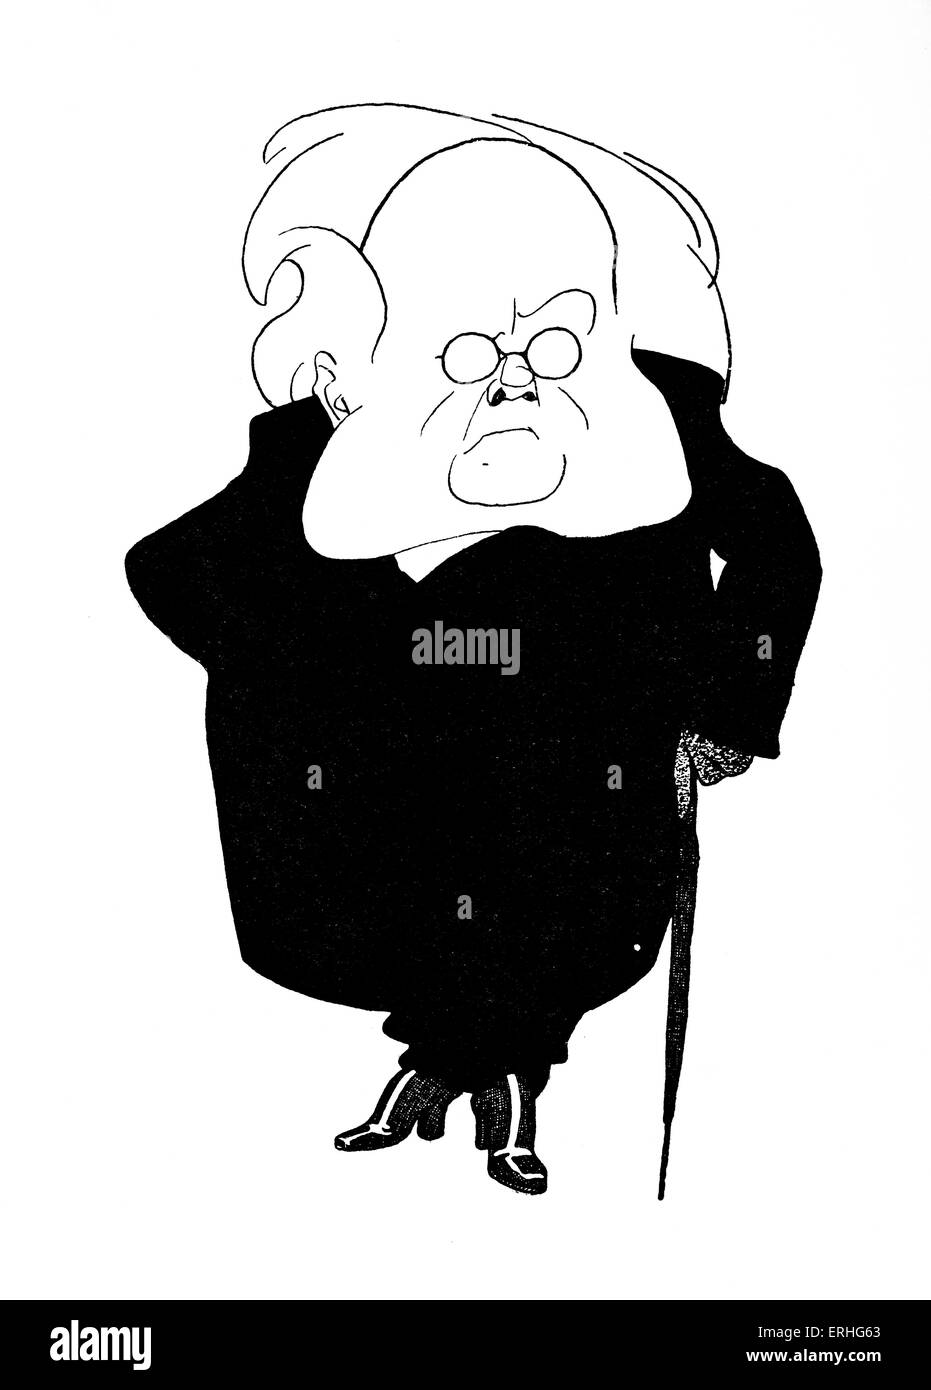 Henrik Ibsen - caricature of the Norwegian playwright from caricaturist Olaf Gulbransson 's 'Beruhmte Zeitgenossen'. - Stock Image